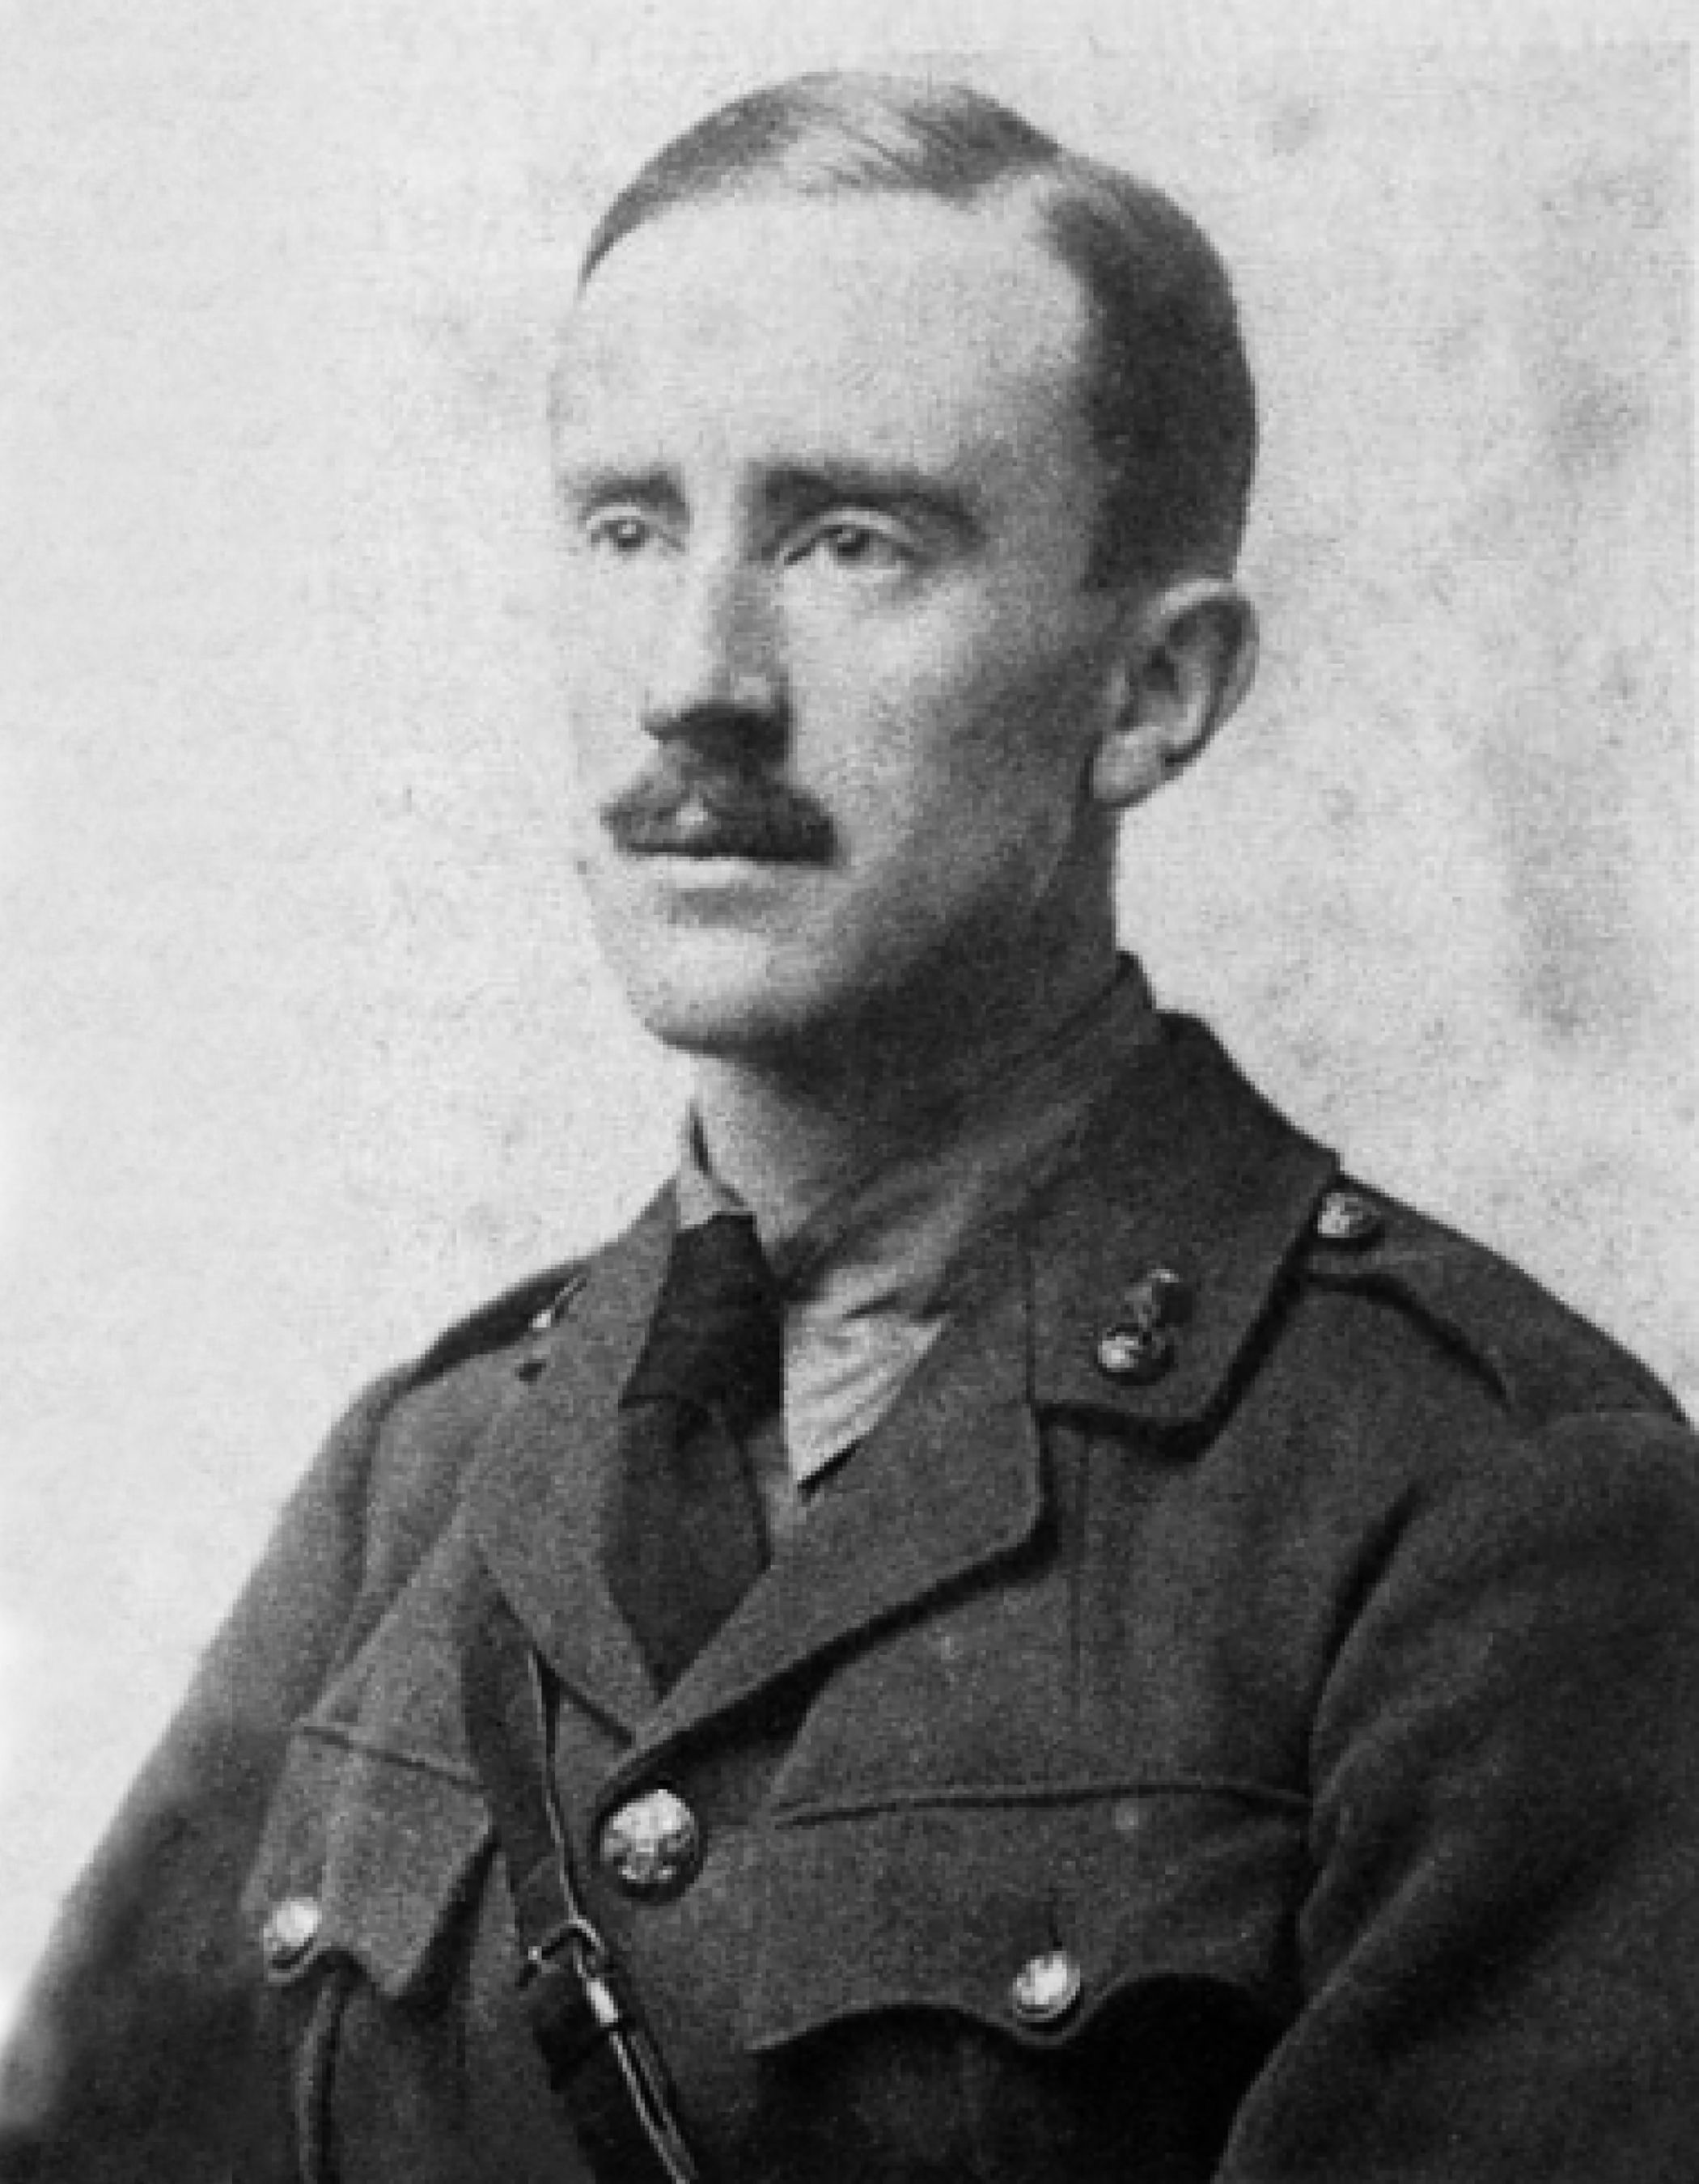 J.R.R. Tolkien's Love for His Wife Inspired 'The Lord of the Rings'